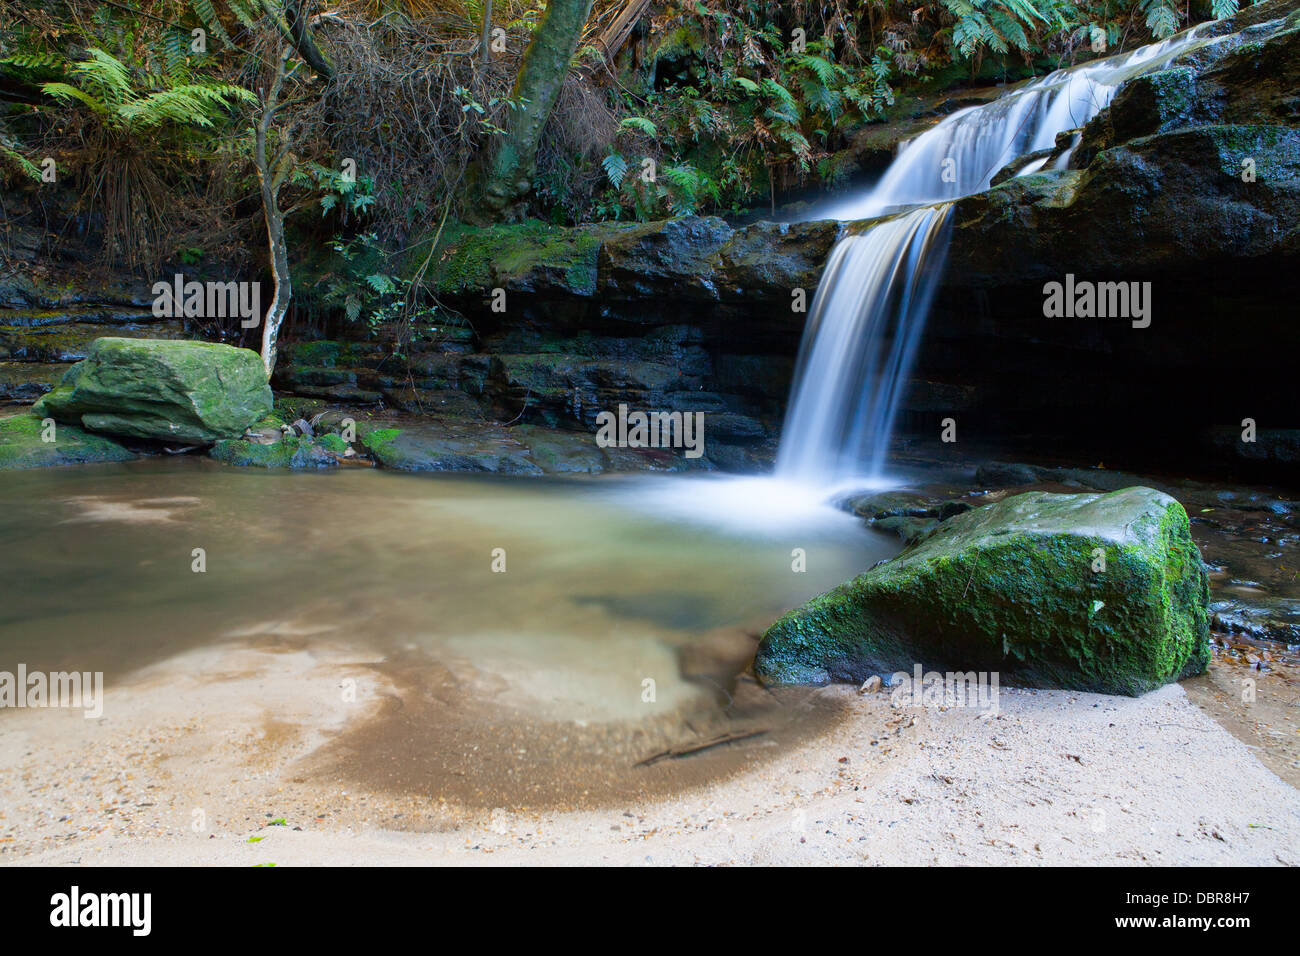 Leura cascades in the Blue Mountains, New South Wales, Australia - Stock Image